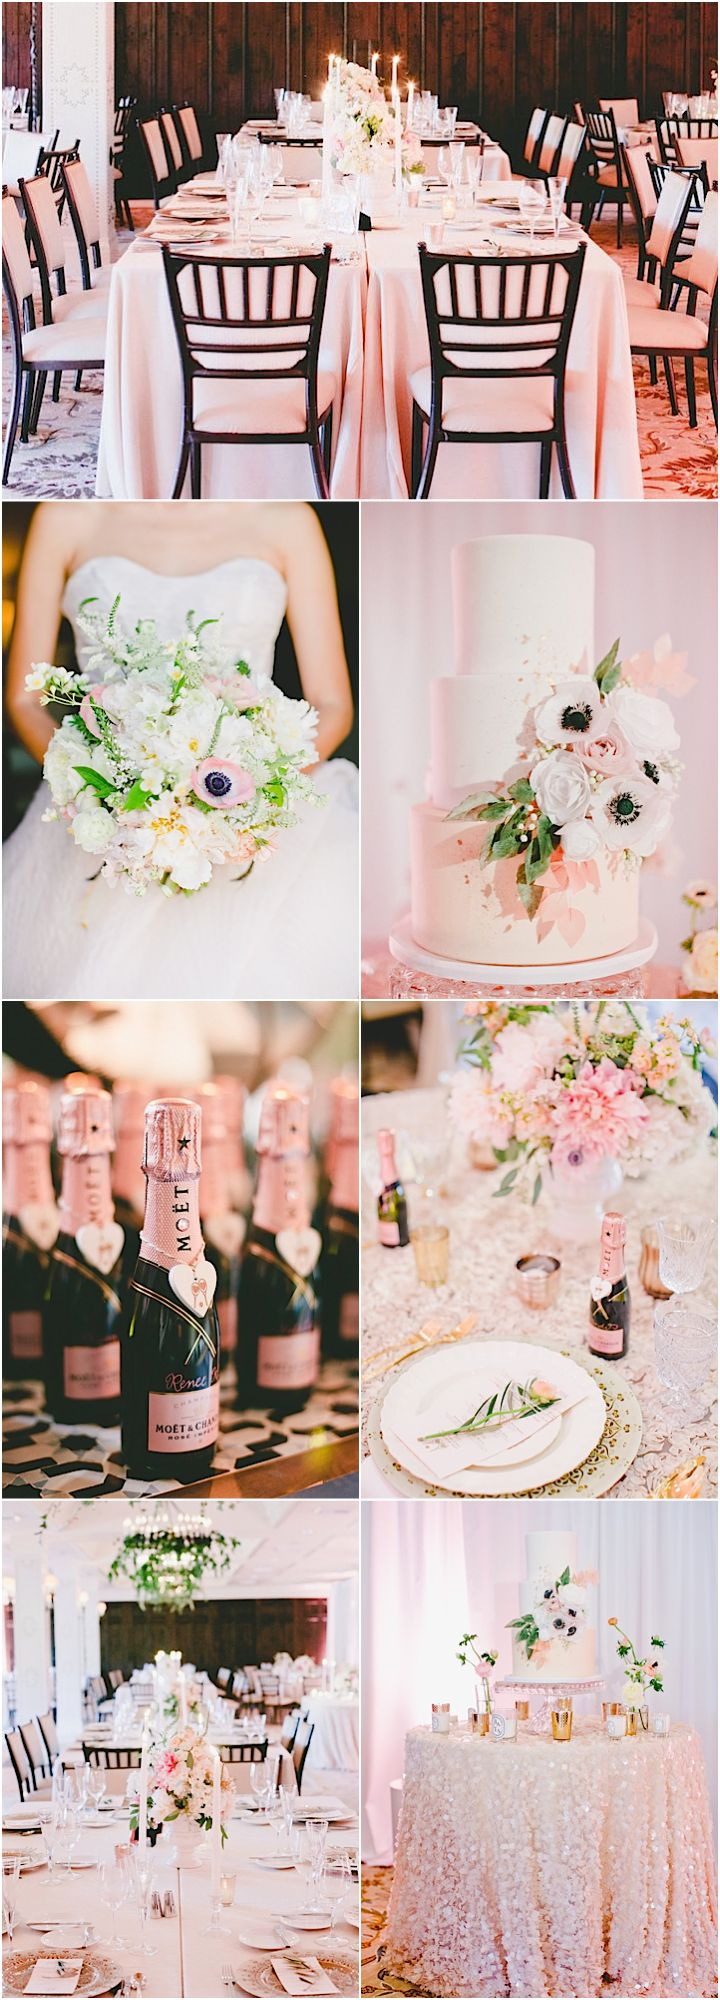 Featured Photographer: onelove photography; Pink wedding reception details